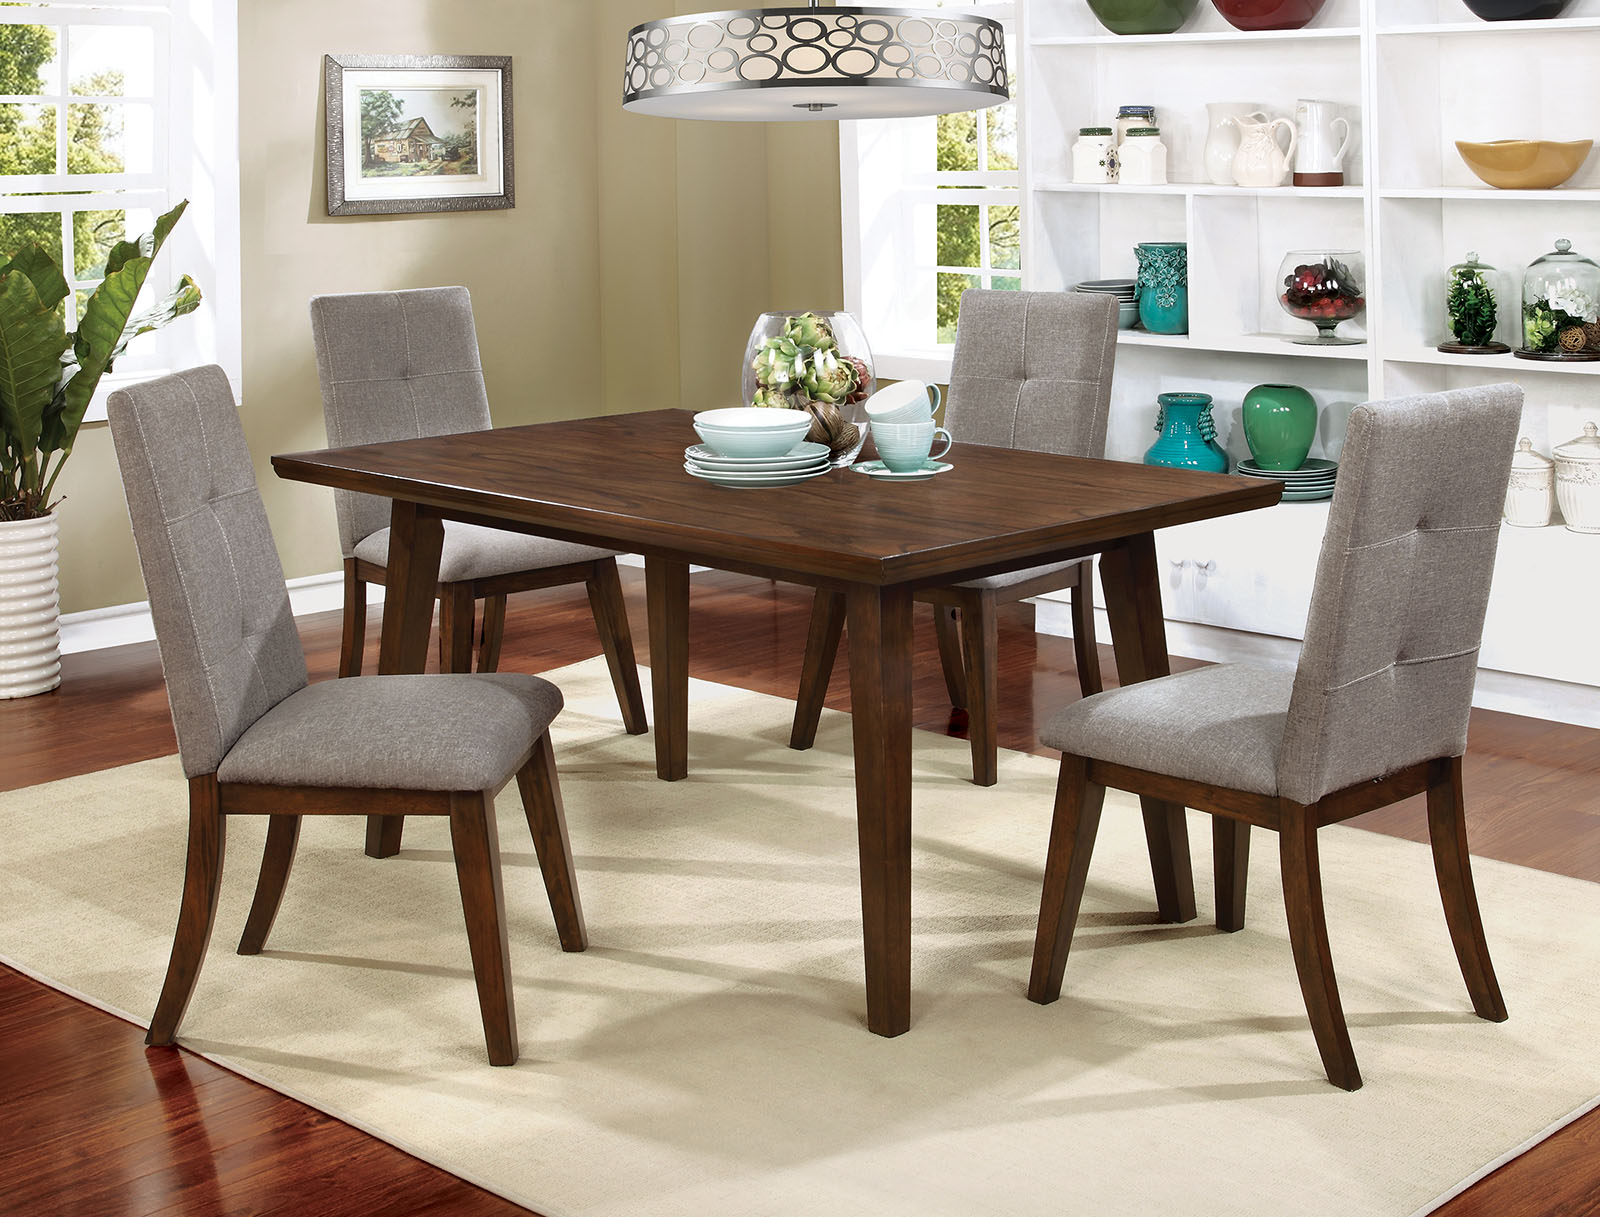 Furniture Of America Janell Dining Table In Gray 35 Dining Room Furniture Canal Dover